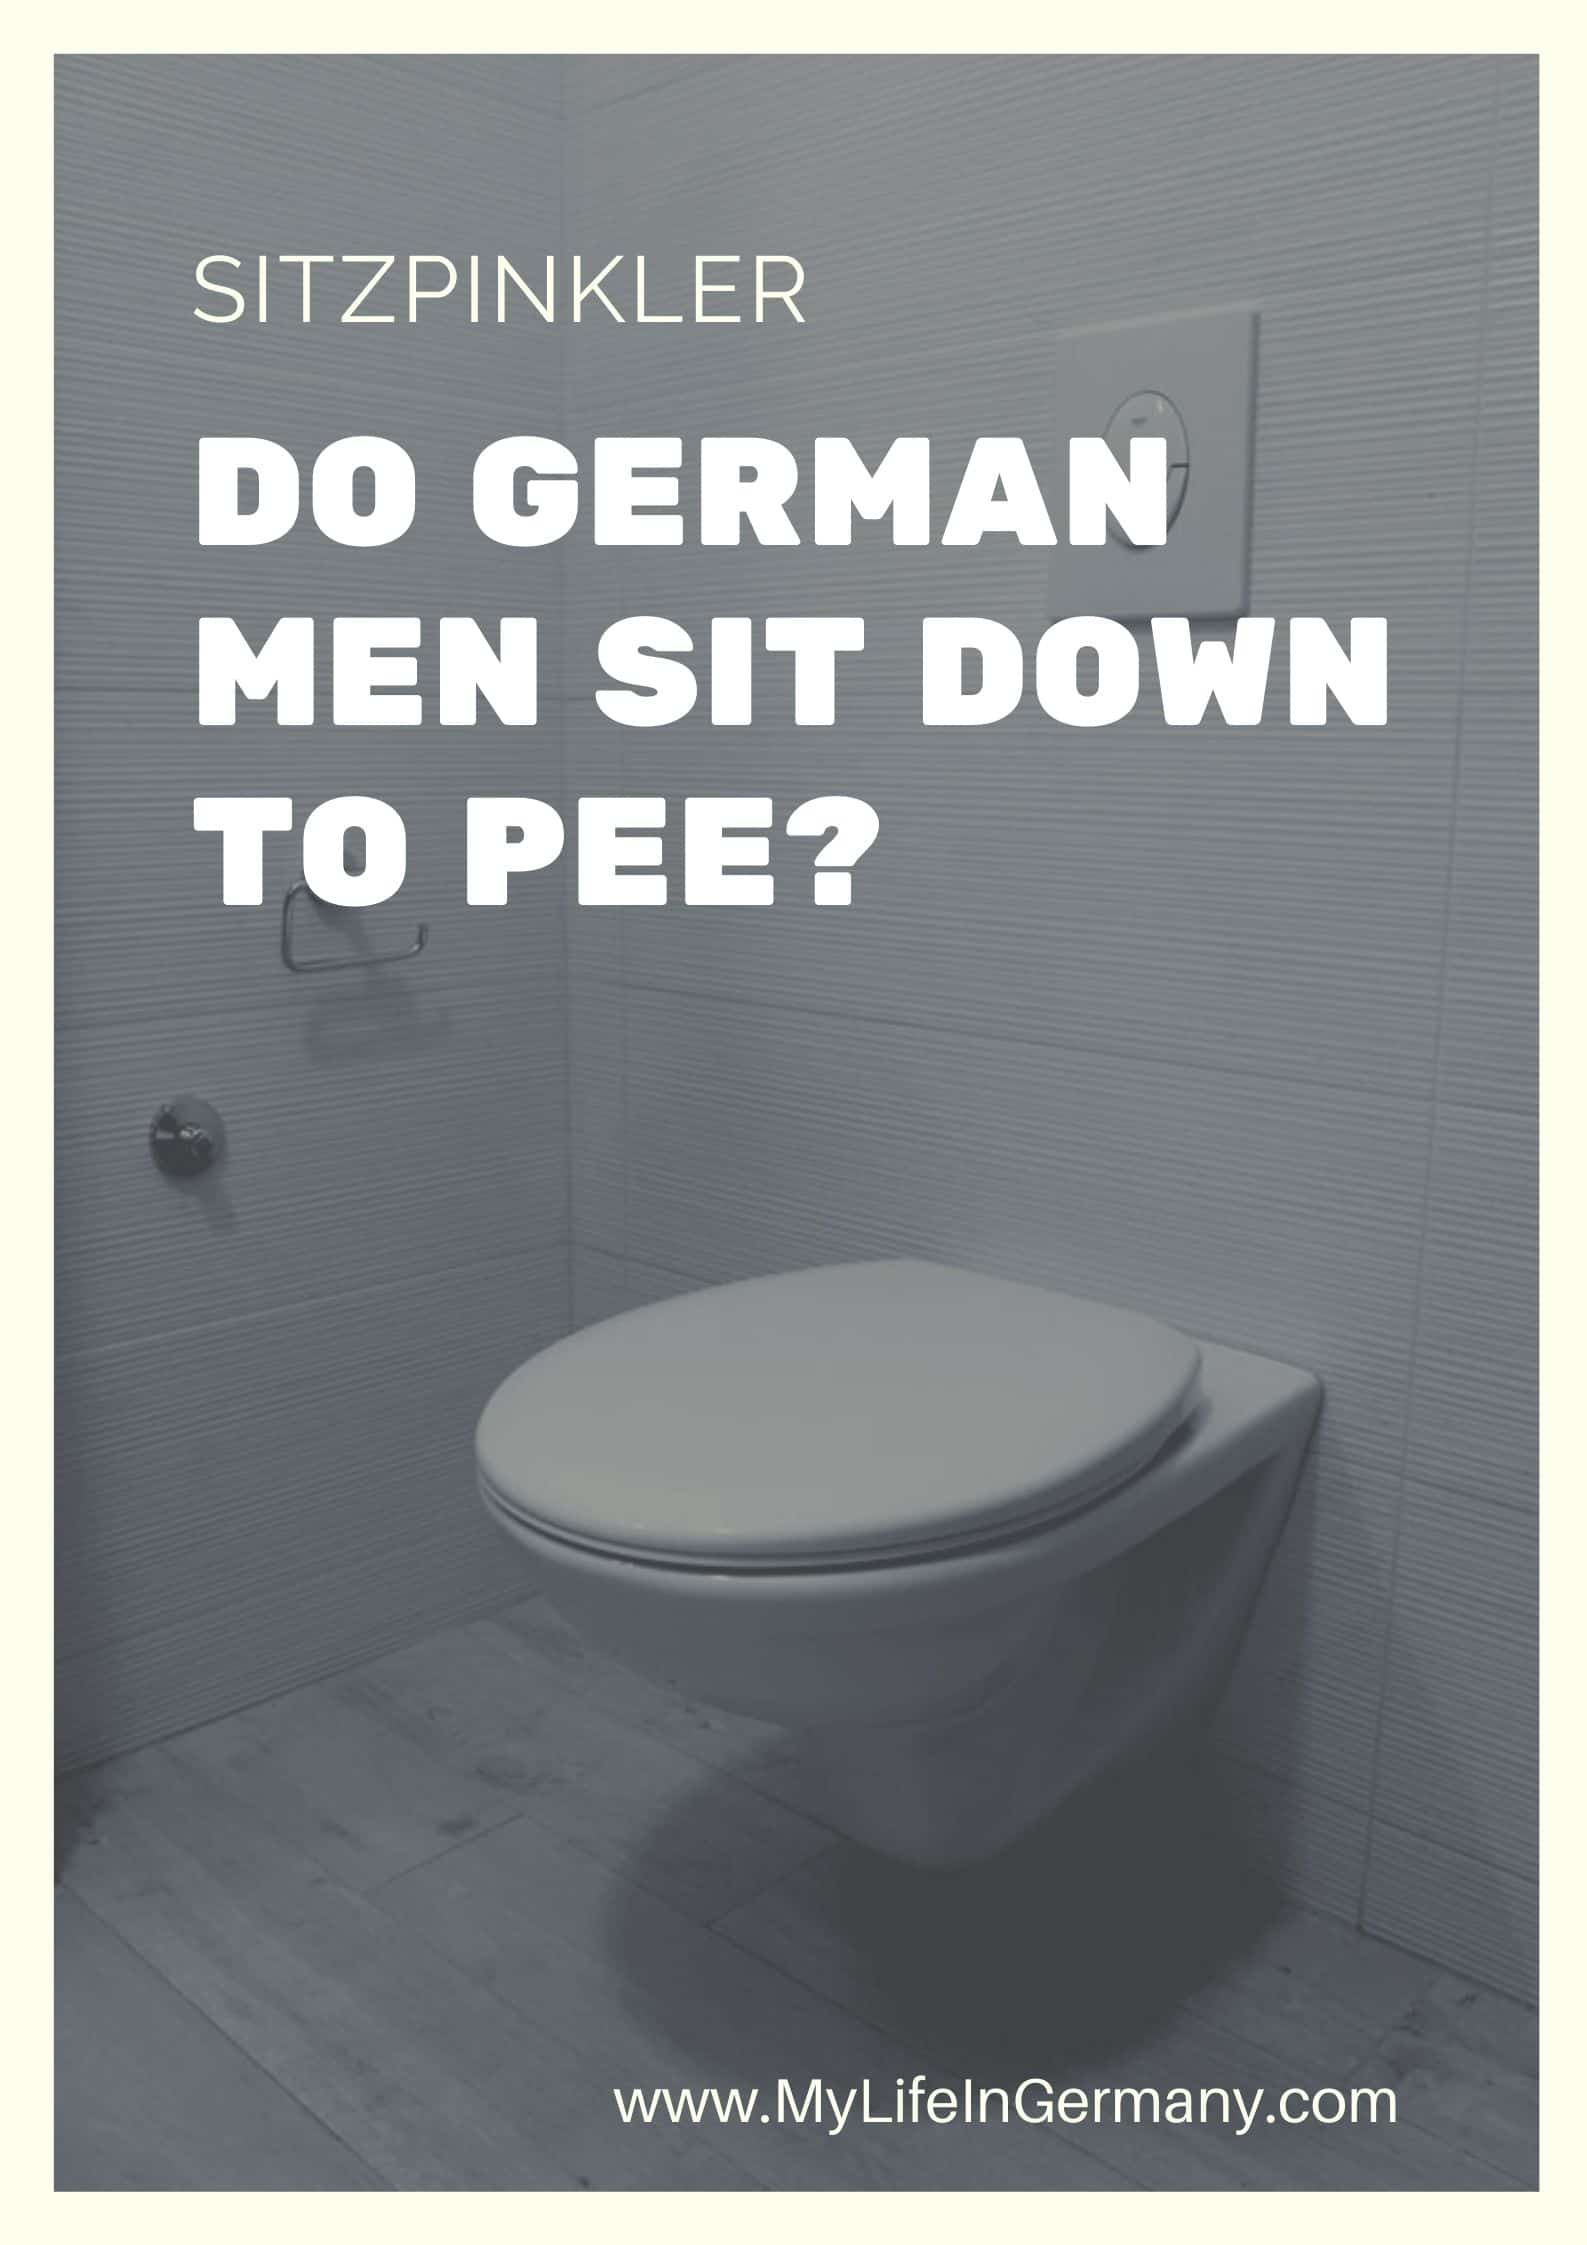 pinterest toilet edited_sitzpinkler_do german men sit down to pee_men sitting to pee_my life in germany_hkwomanabroad-min